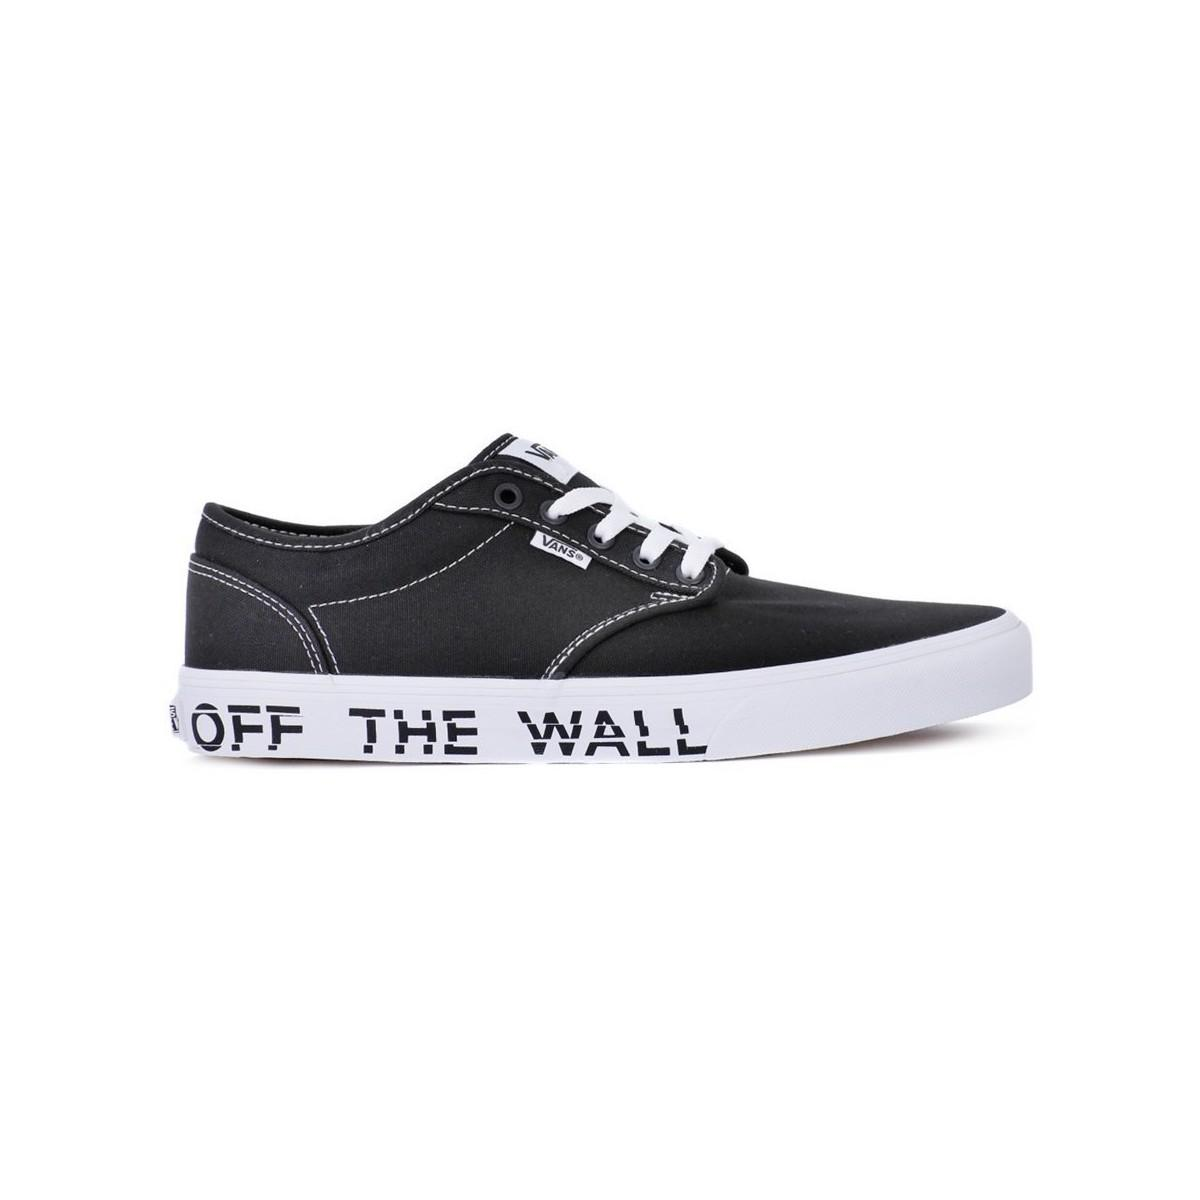 e8073d72f4 Vans Atwood Printed Fox Men s Shoes (trainers) In Black in Black for ...